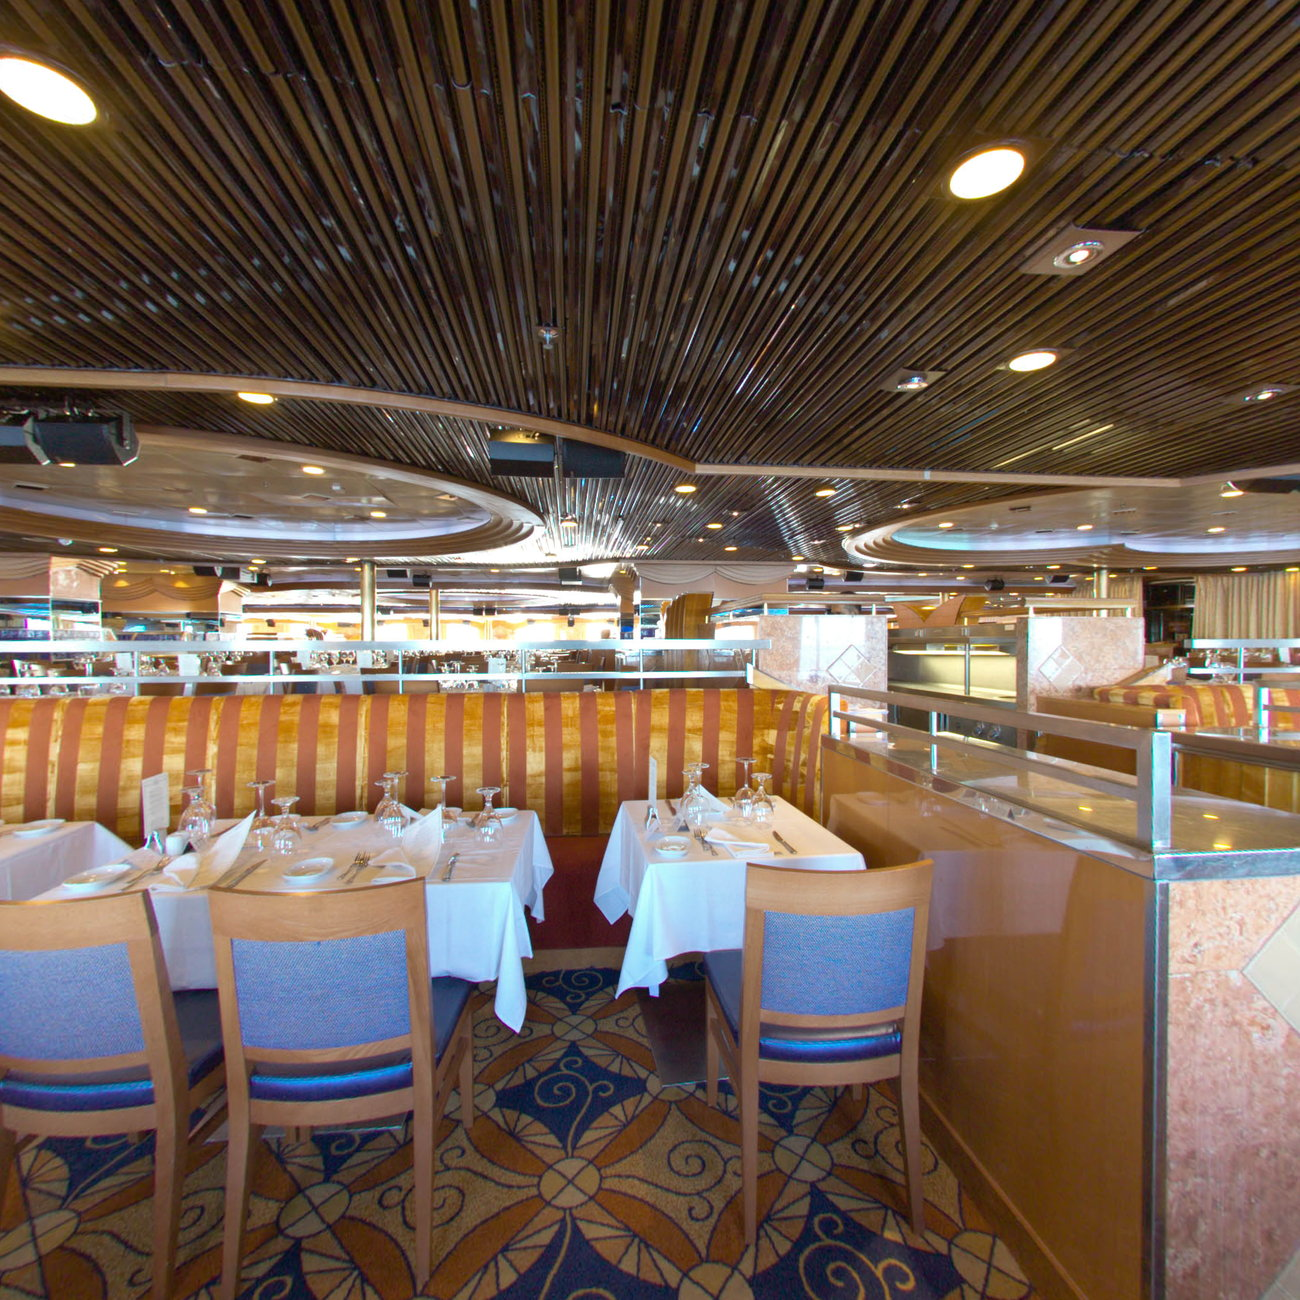 Panorama of Mardi Gras Dining Room on Carnival Inspiration